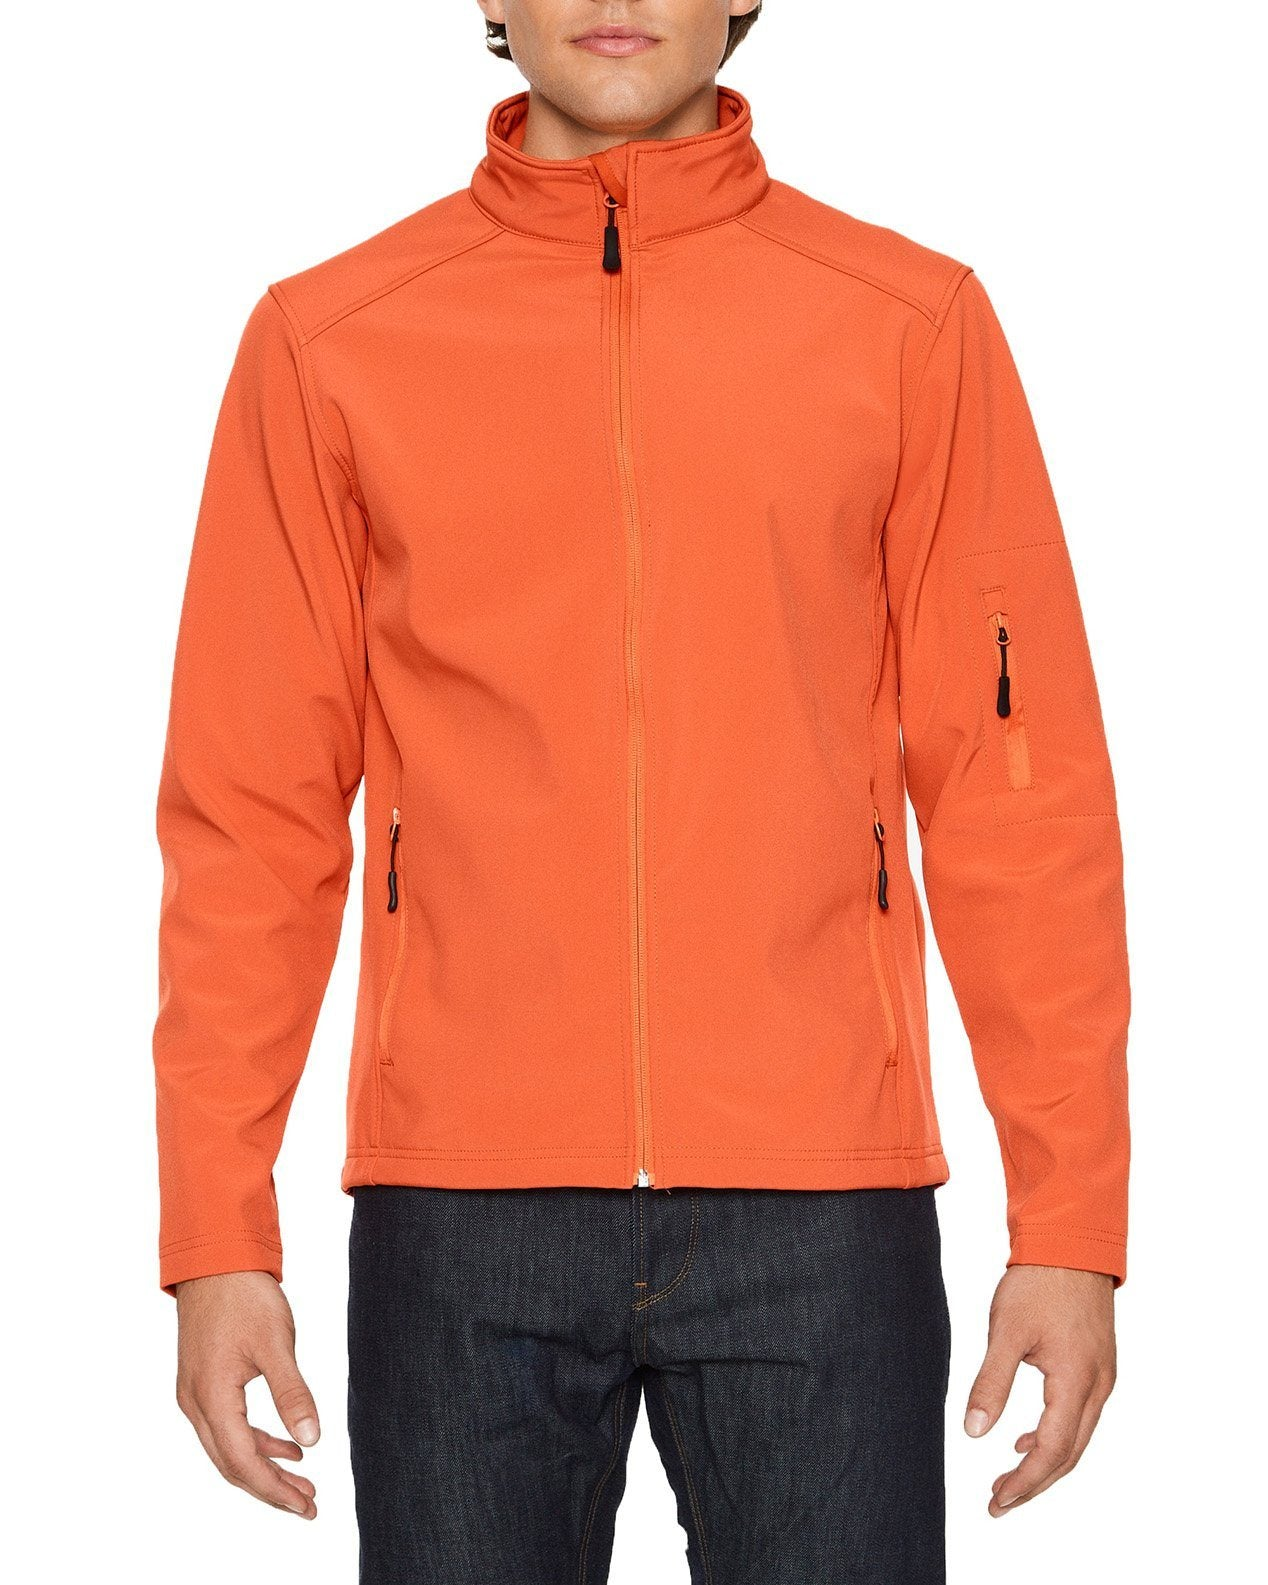 It is a picture of Printable Jacket intended for clothing